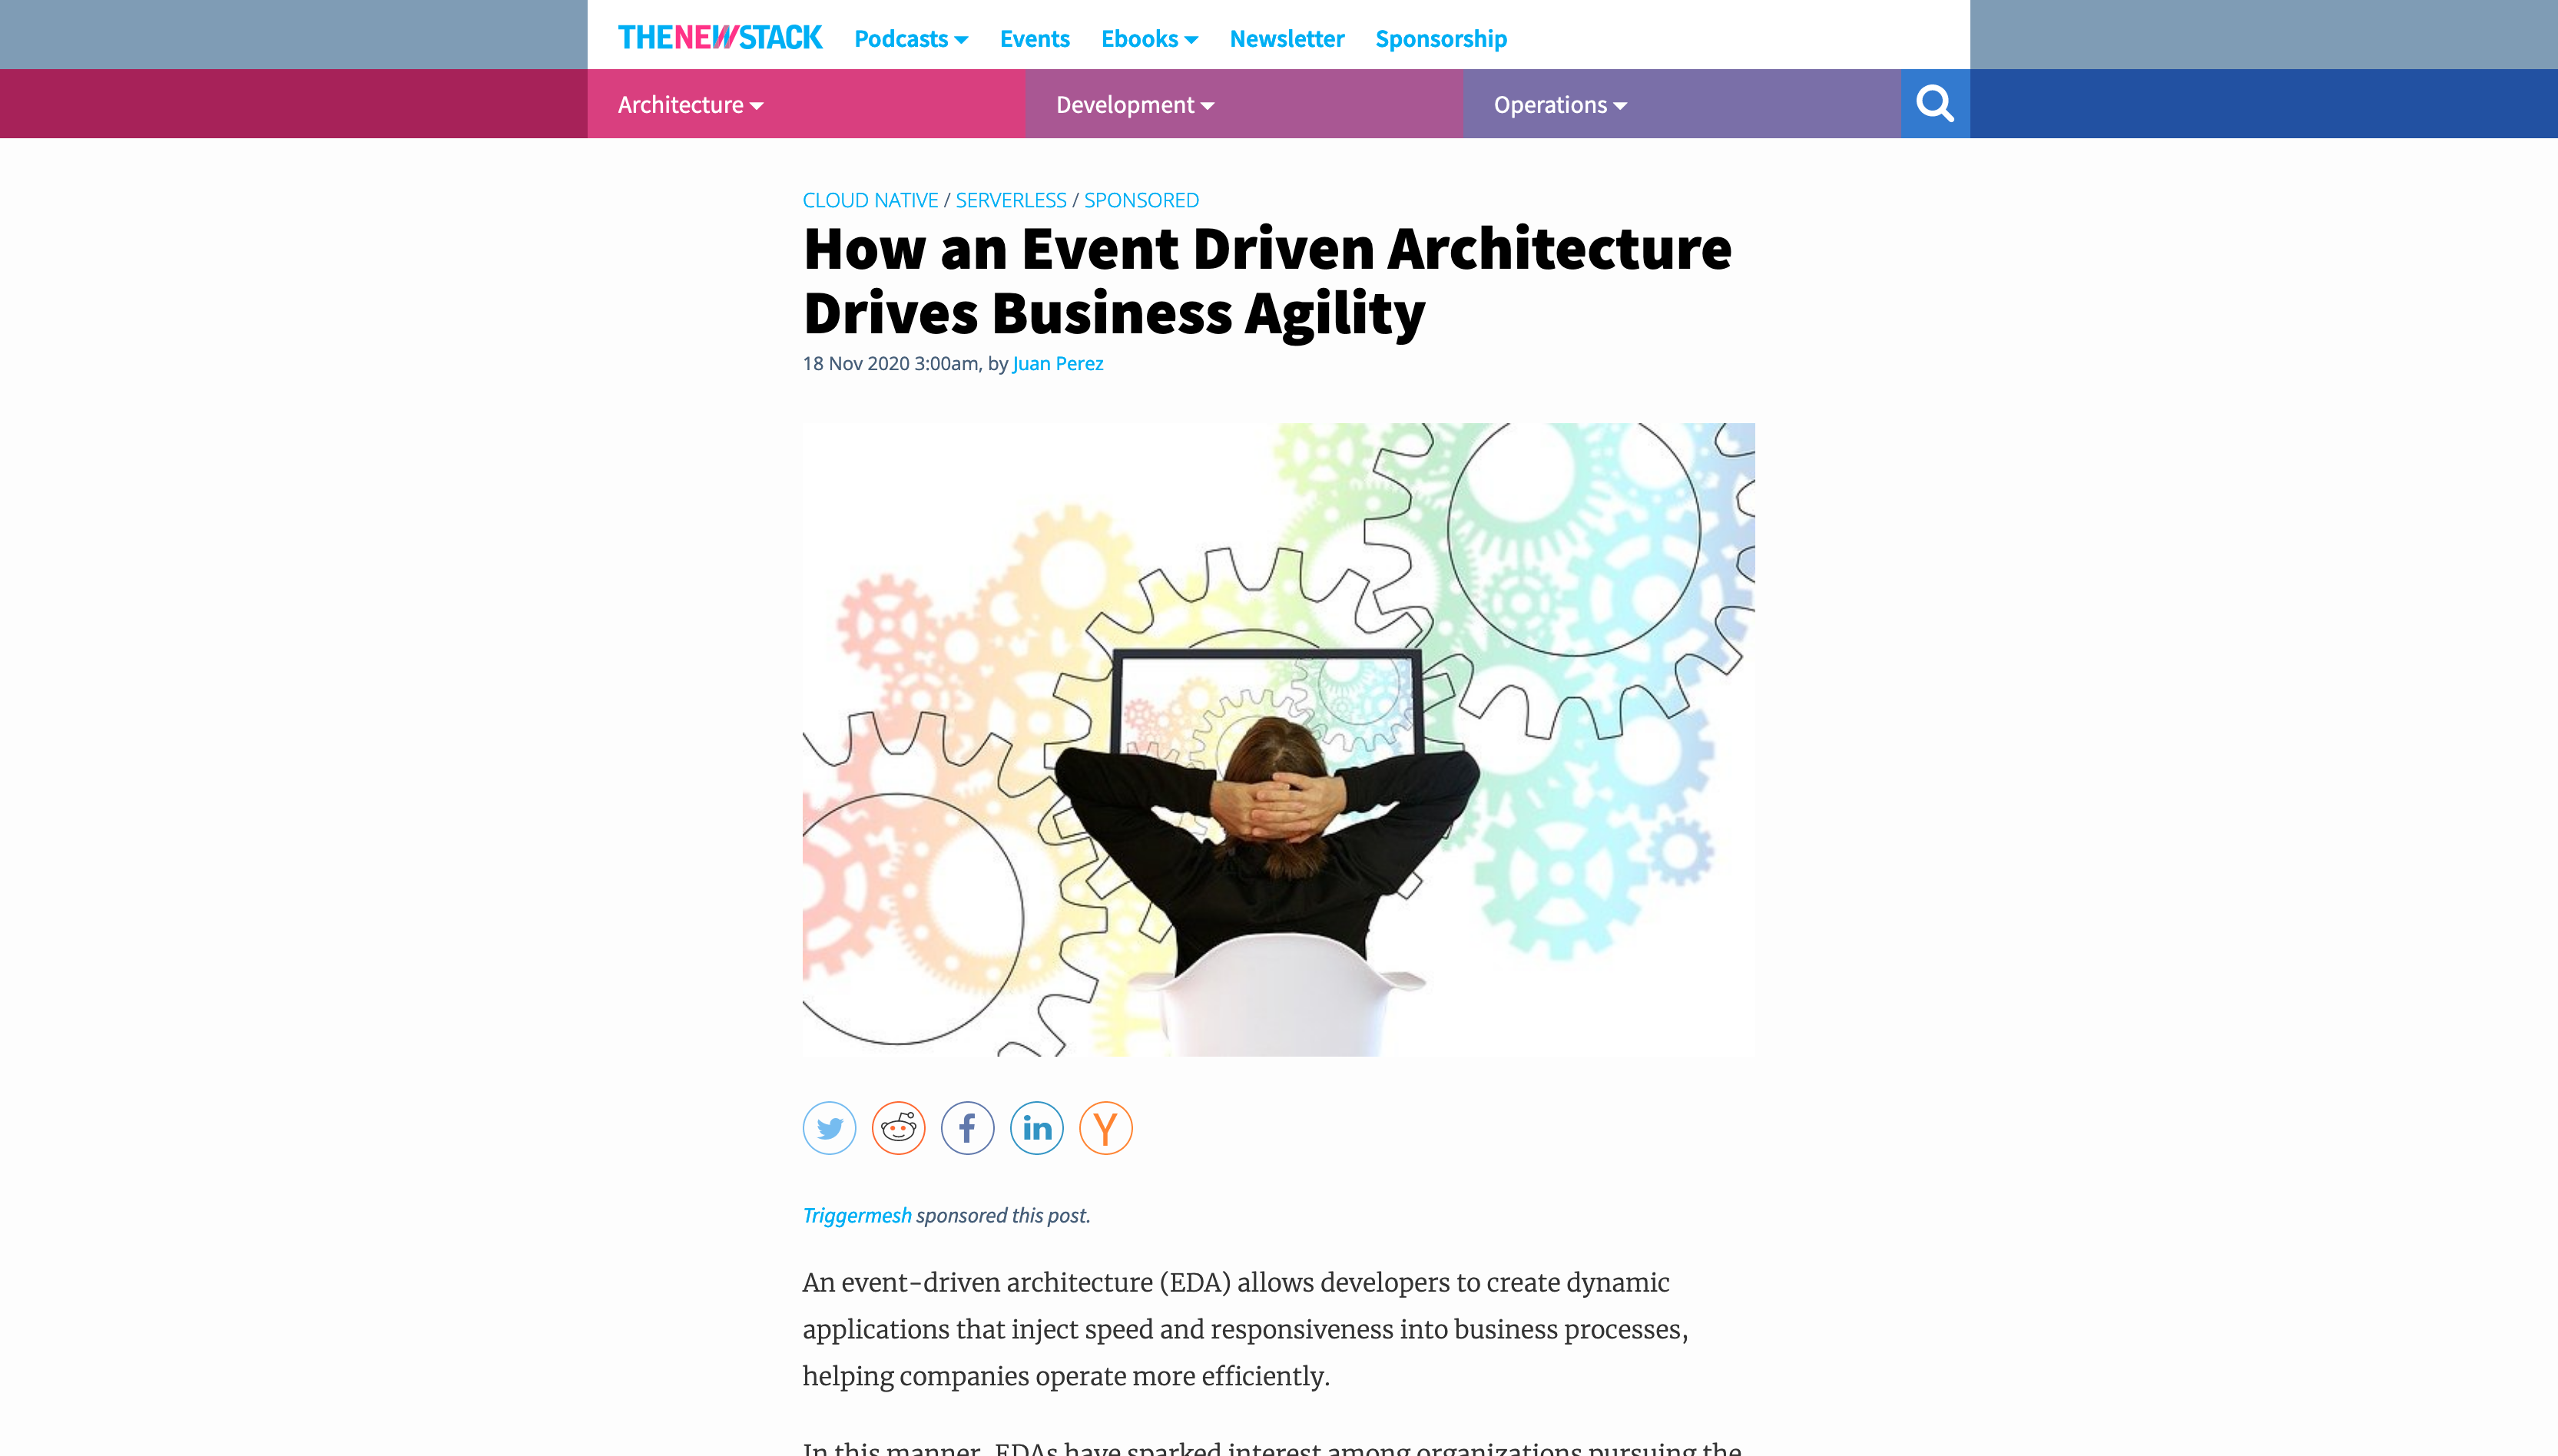 TheNewStack - How an Event Driven Architecture Drives Business Agility